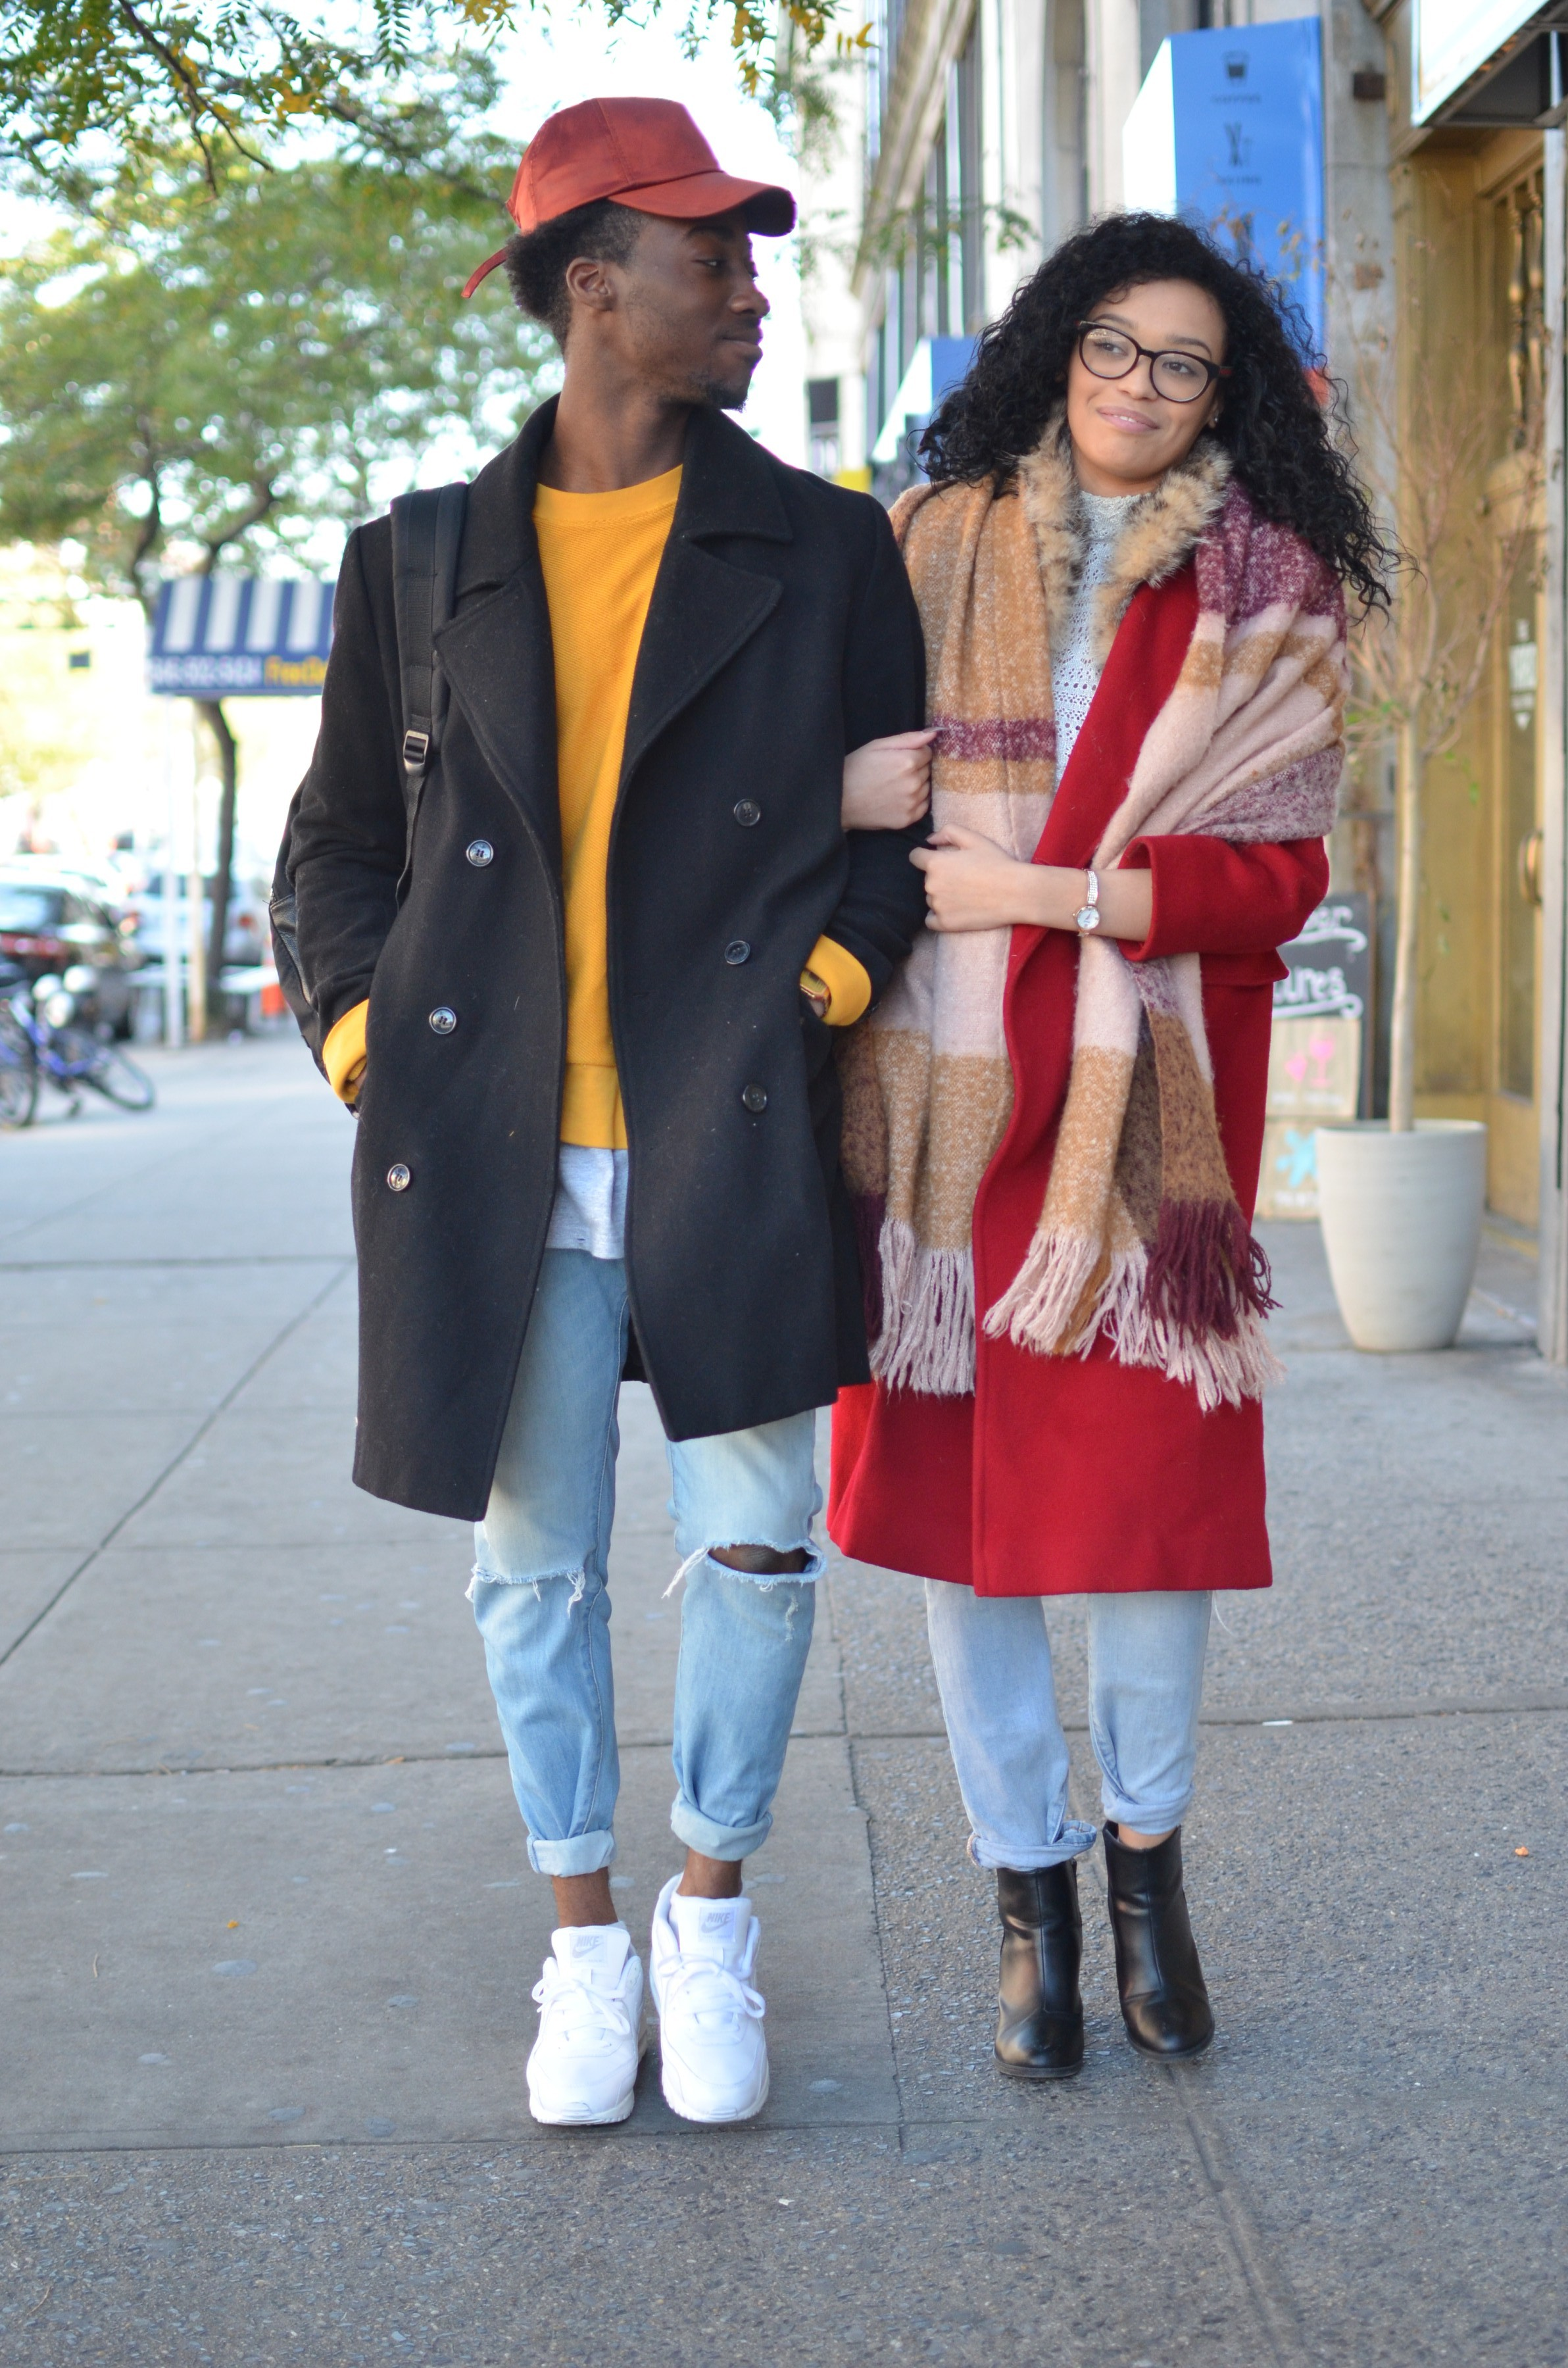 african-american couple in colorful outfits